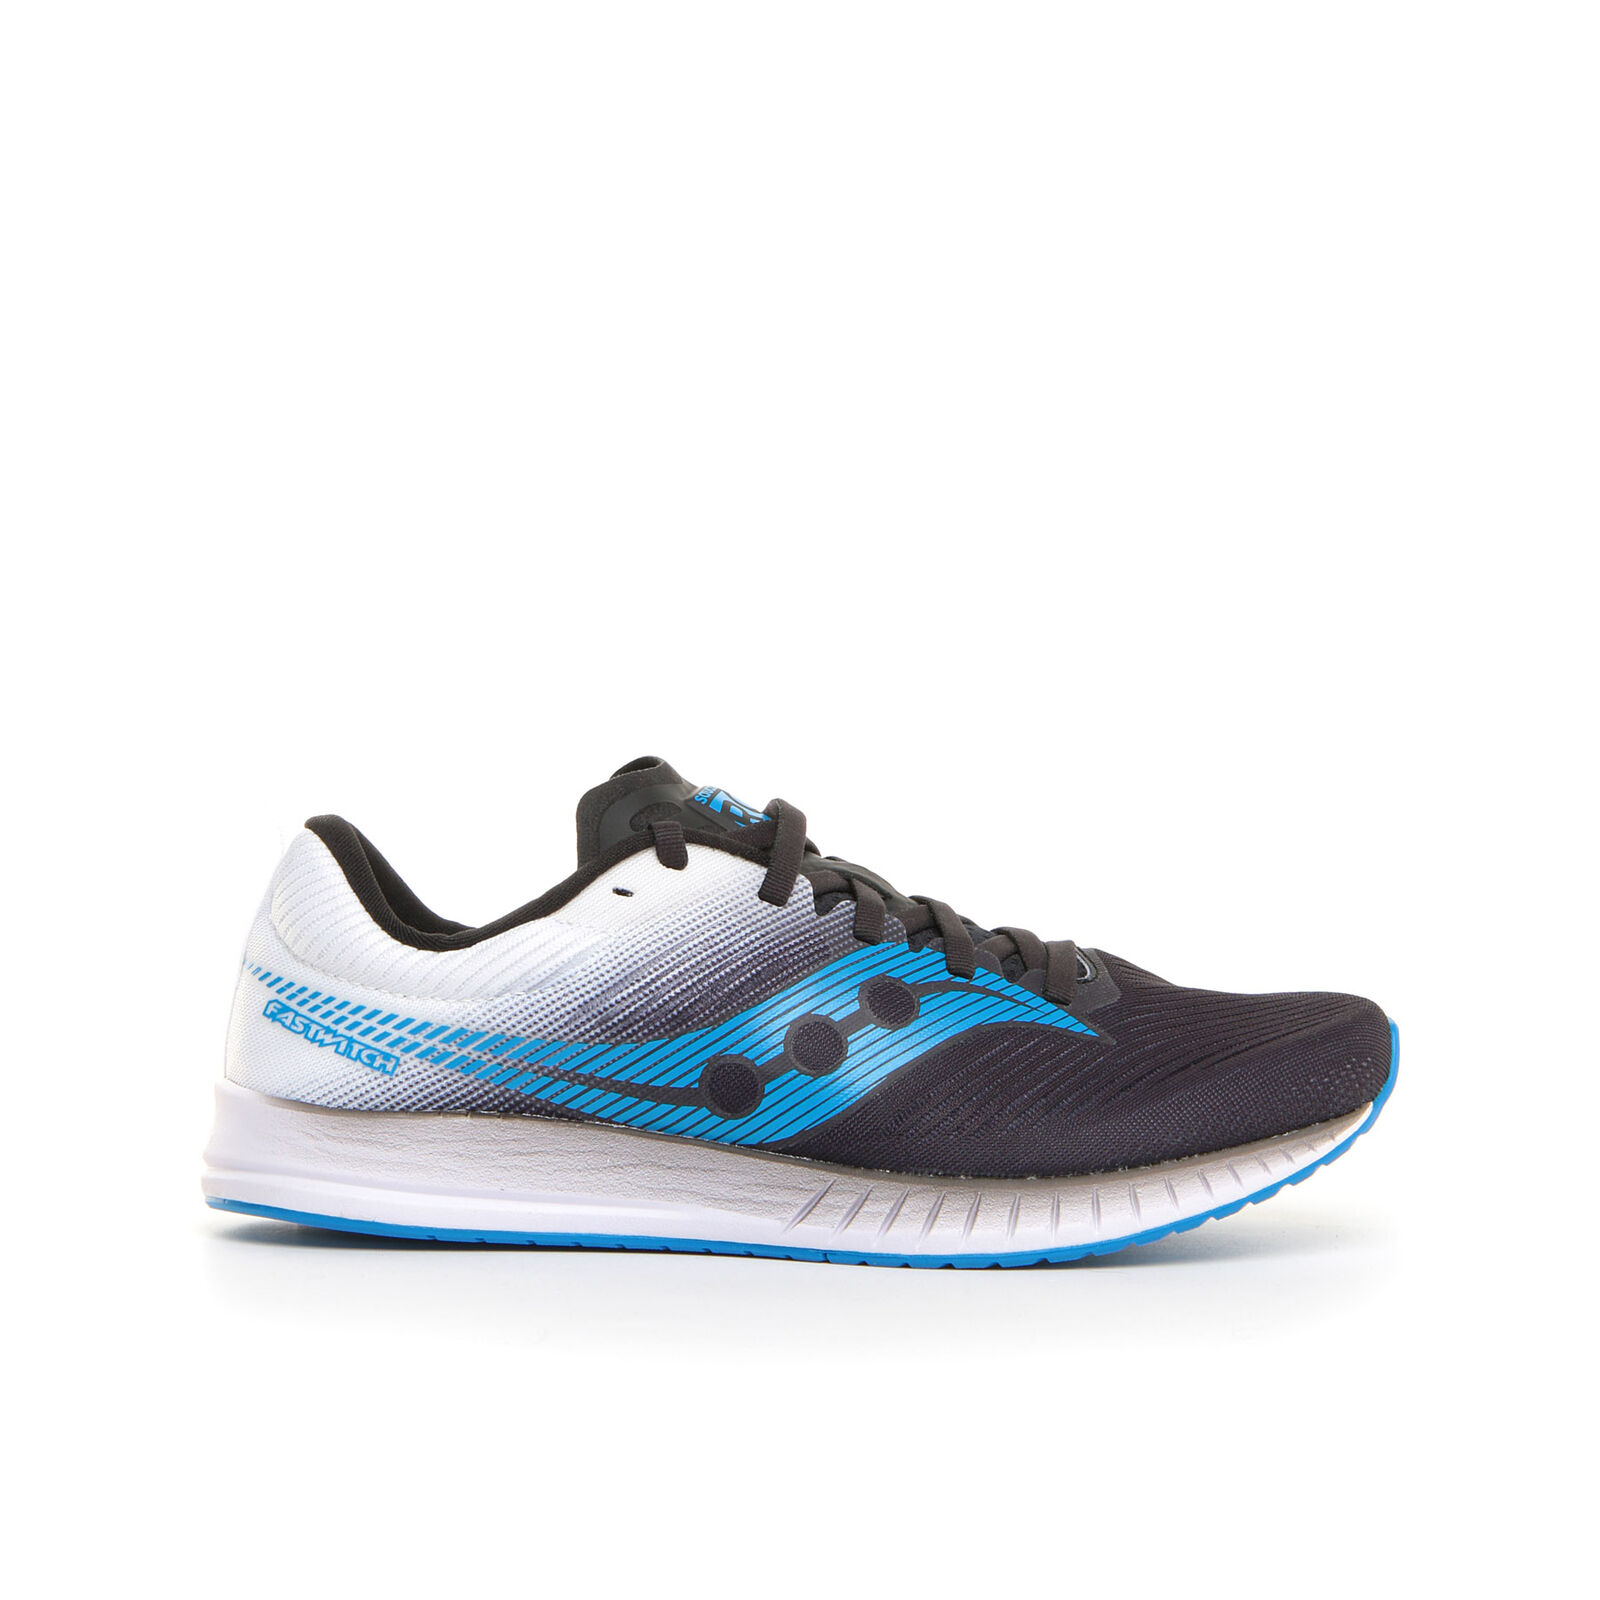 Saucony fastwitch 9 running shoes for men 29053 1